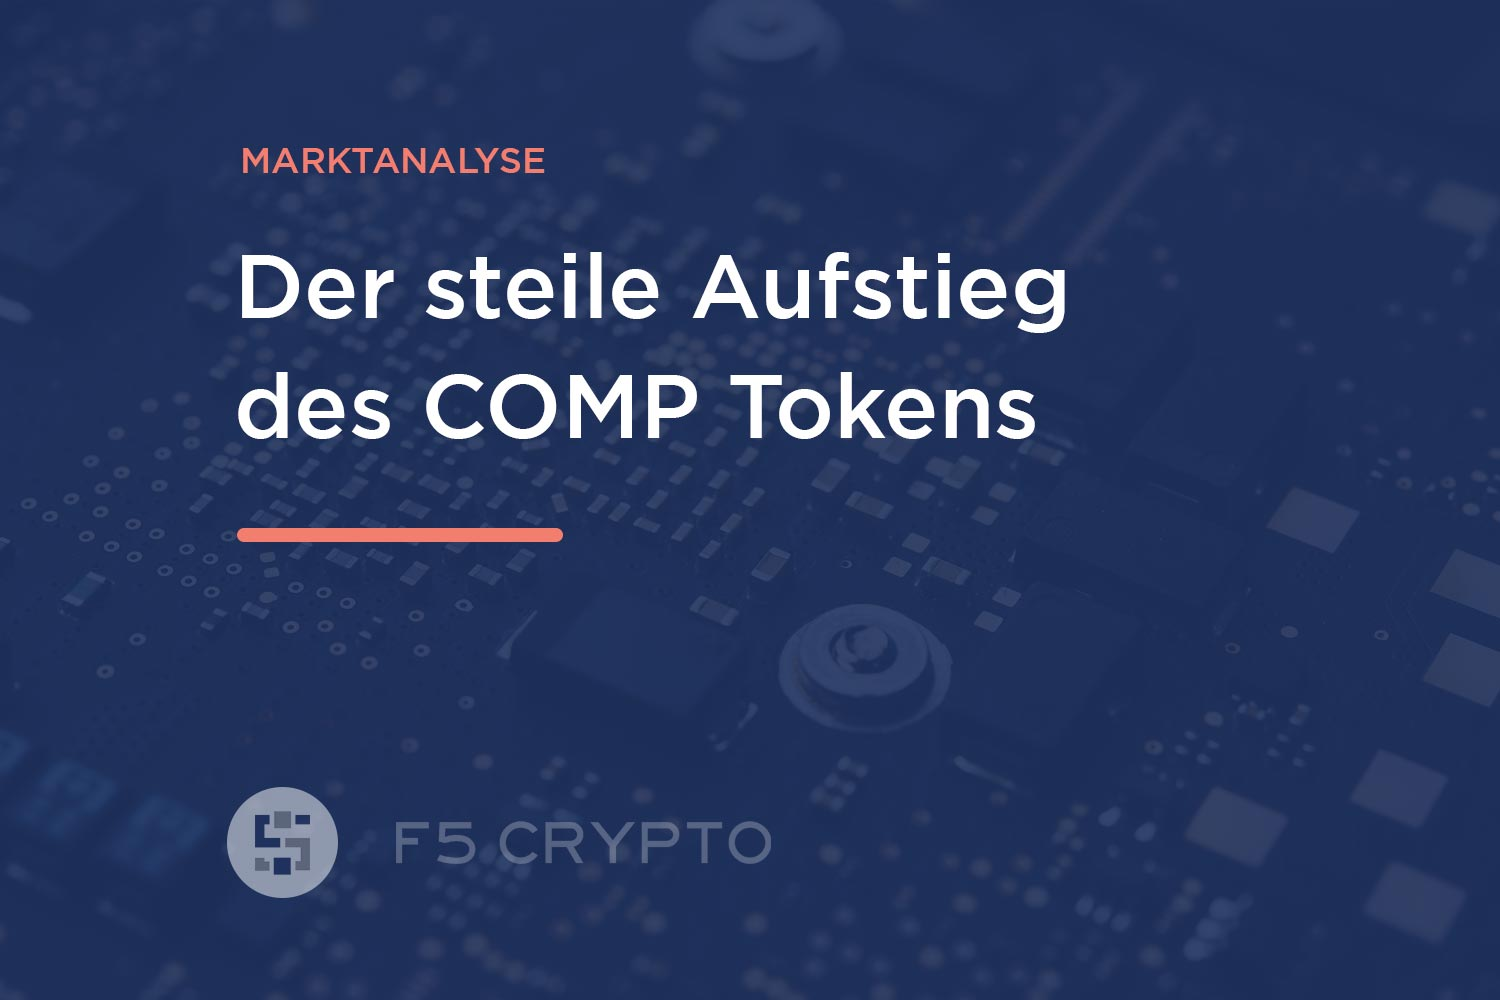 COMP Token - Compound Token